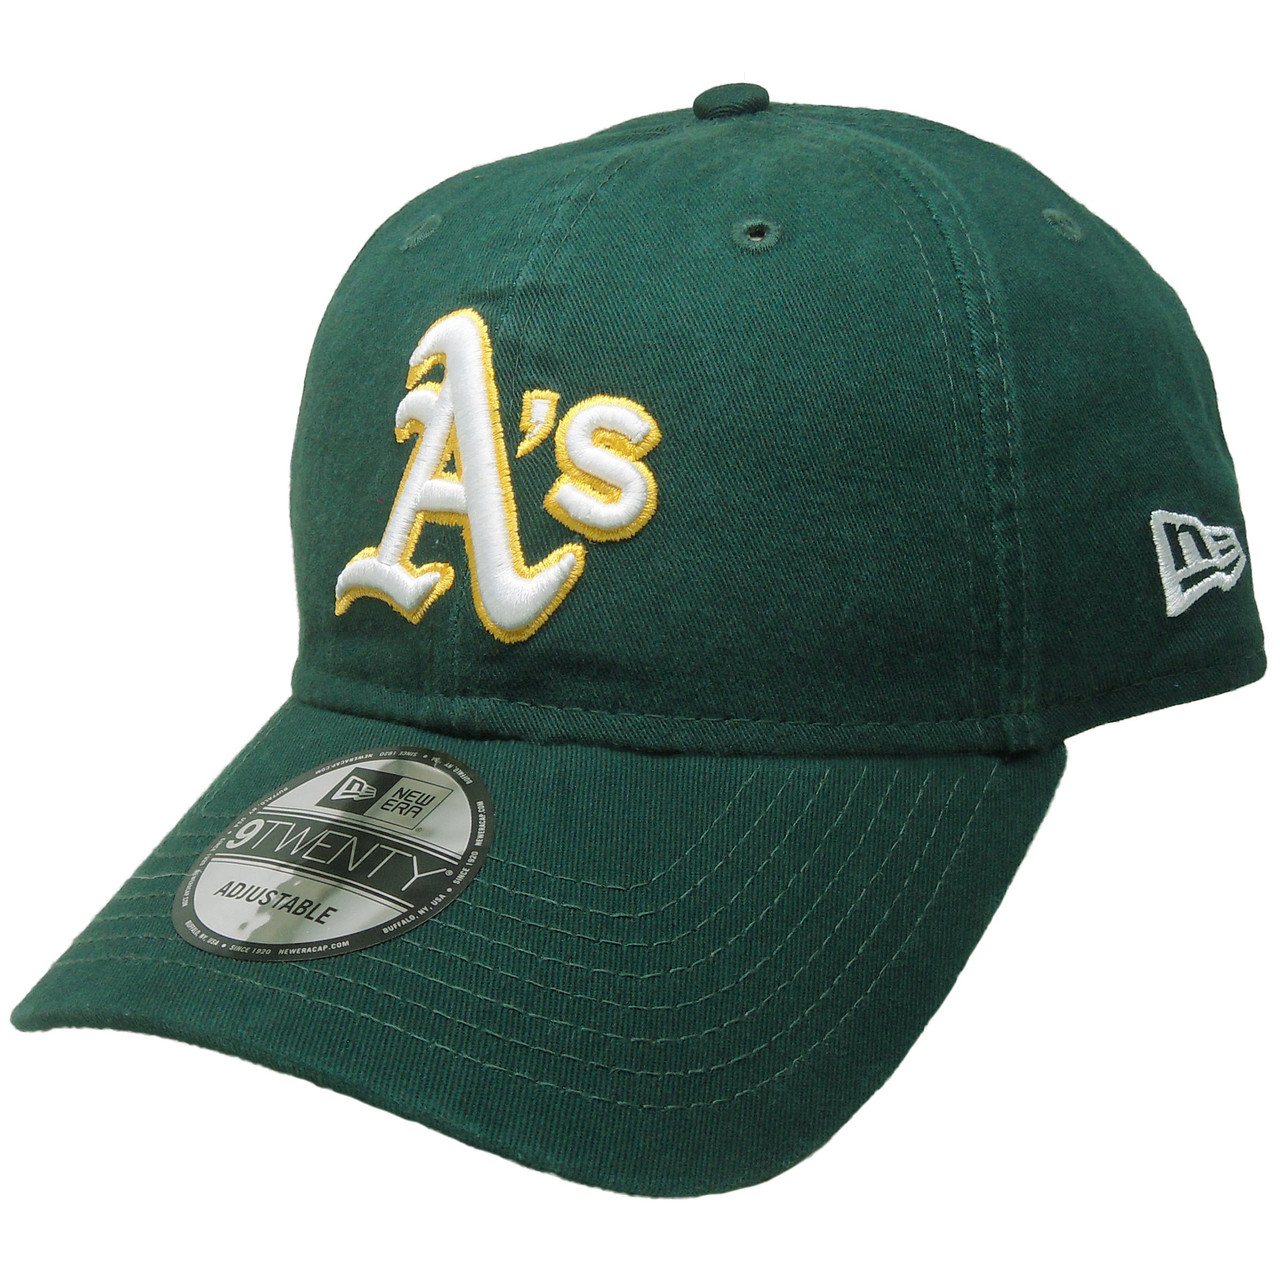 6c74d93e Oakland Athletics New Era 9Twenty Adjustable Hat - Green, White, Yellow